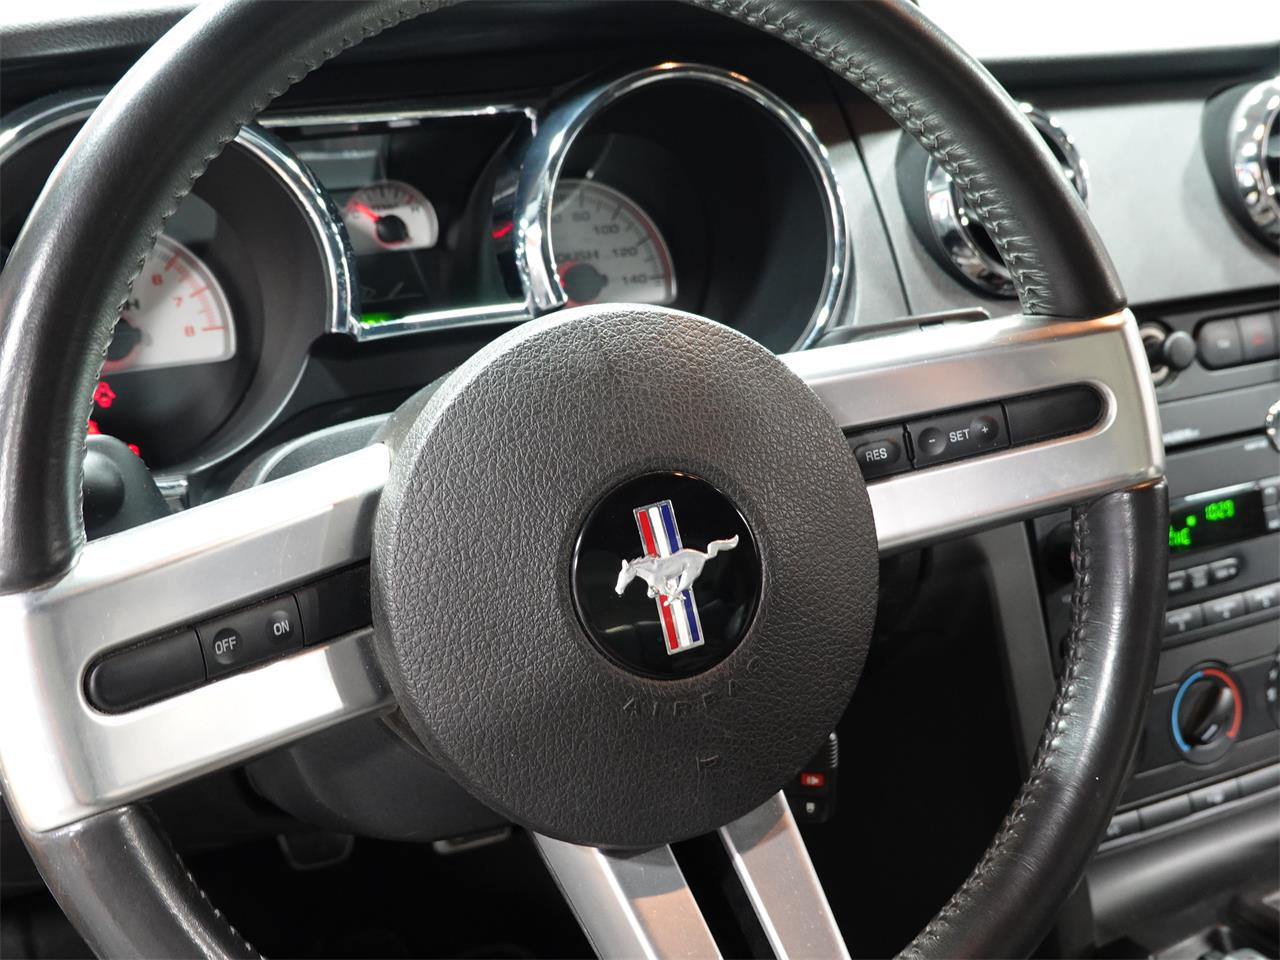 2008 Ford Mustang (CC-1411640) for sale in Pittsburgh, Pennsylvania